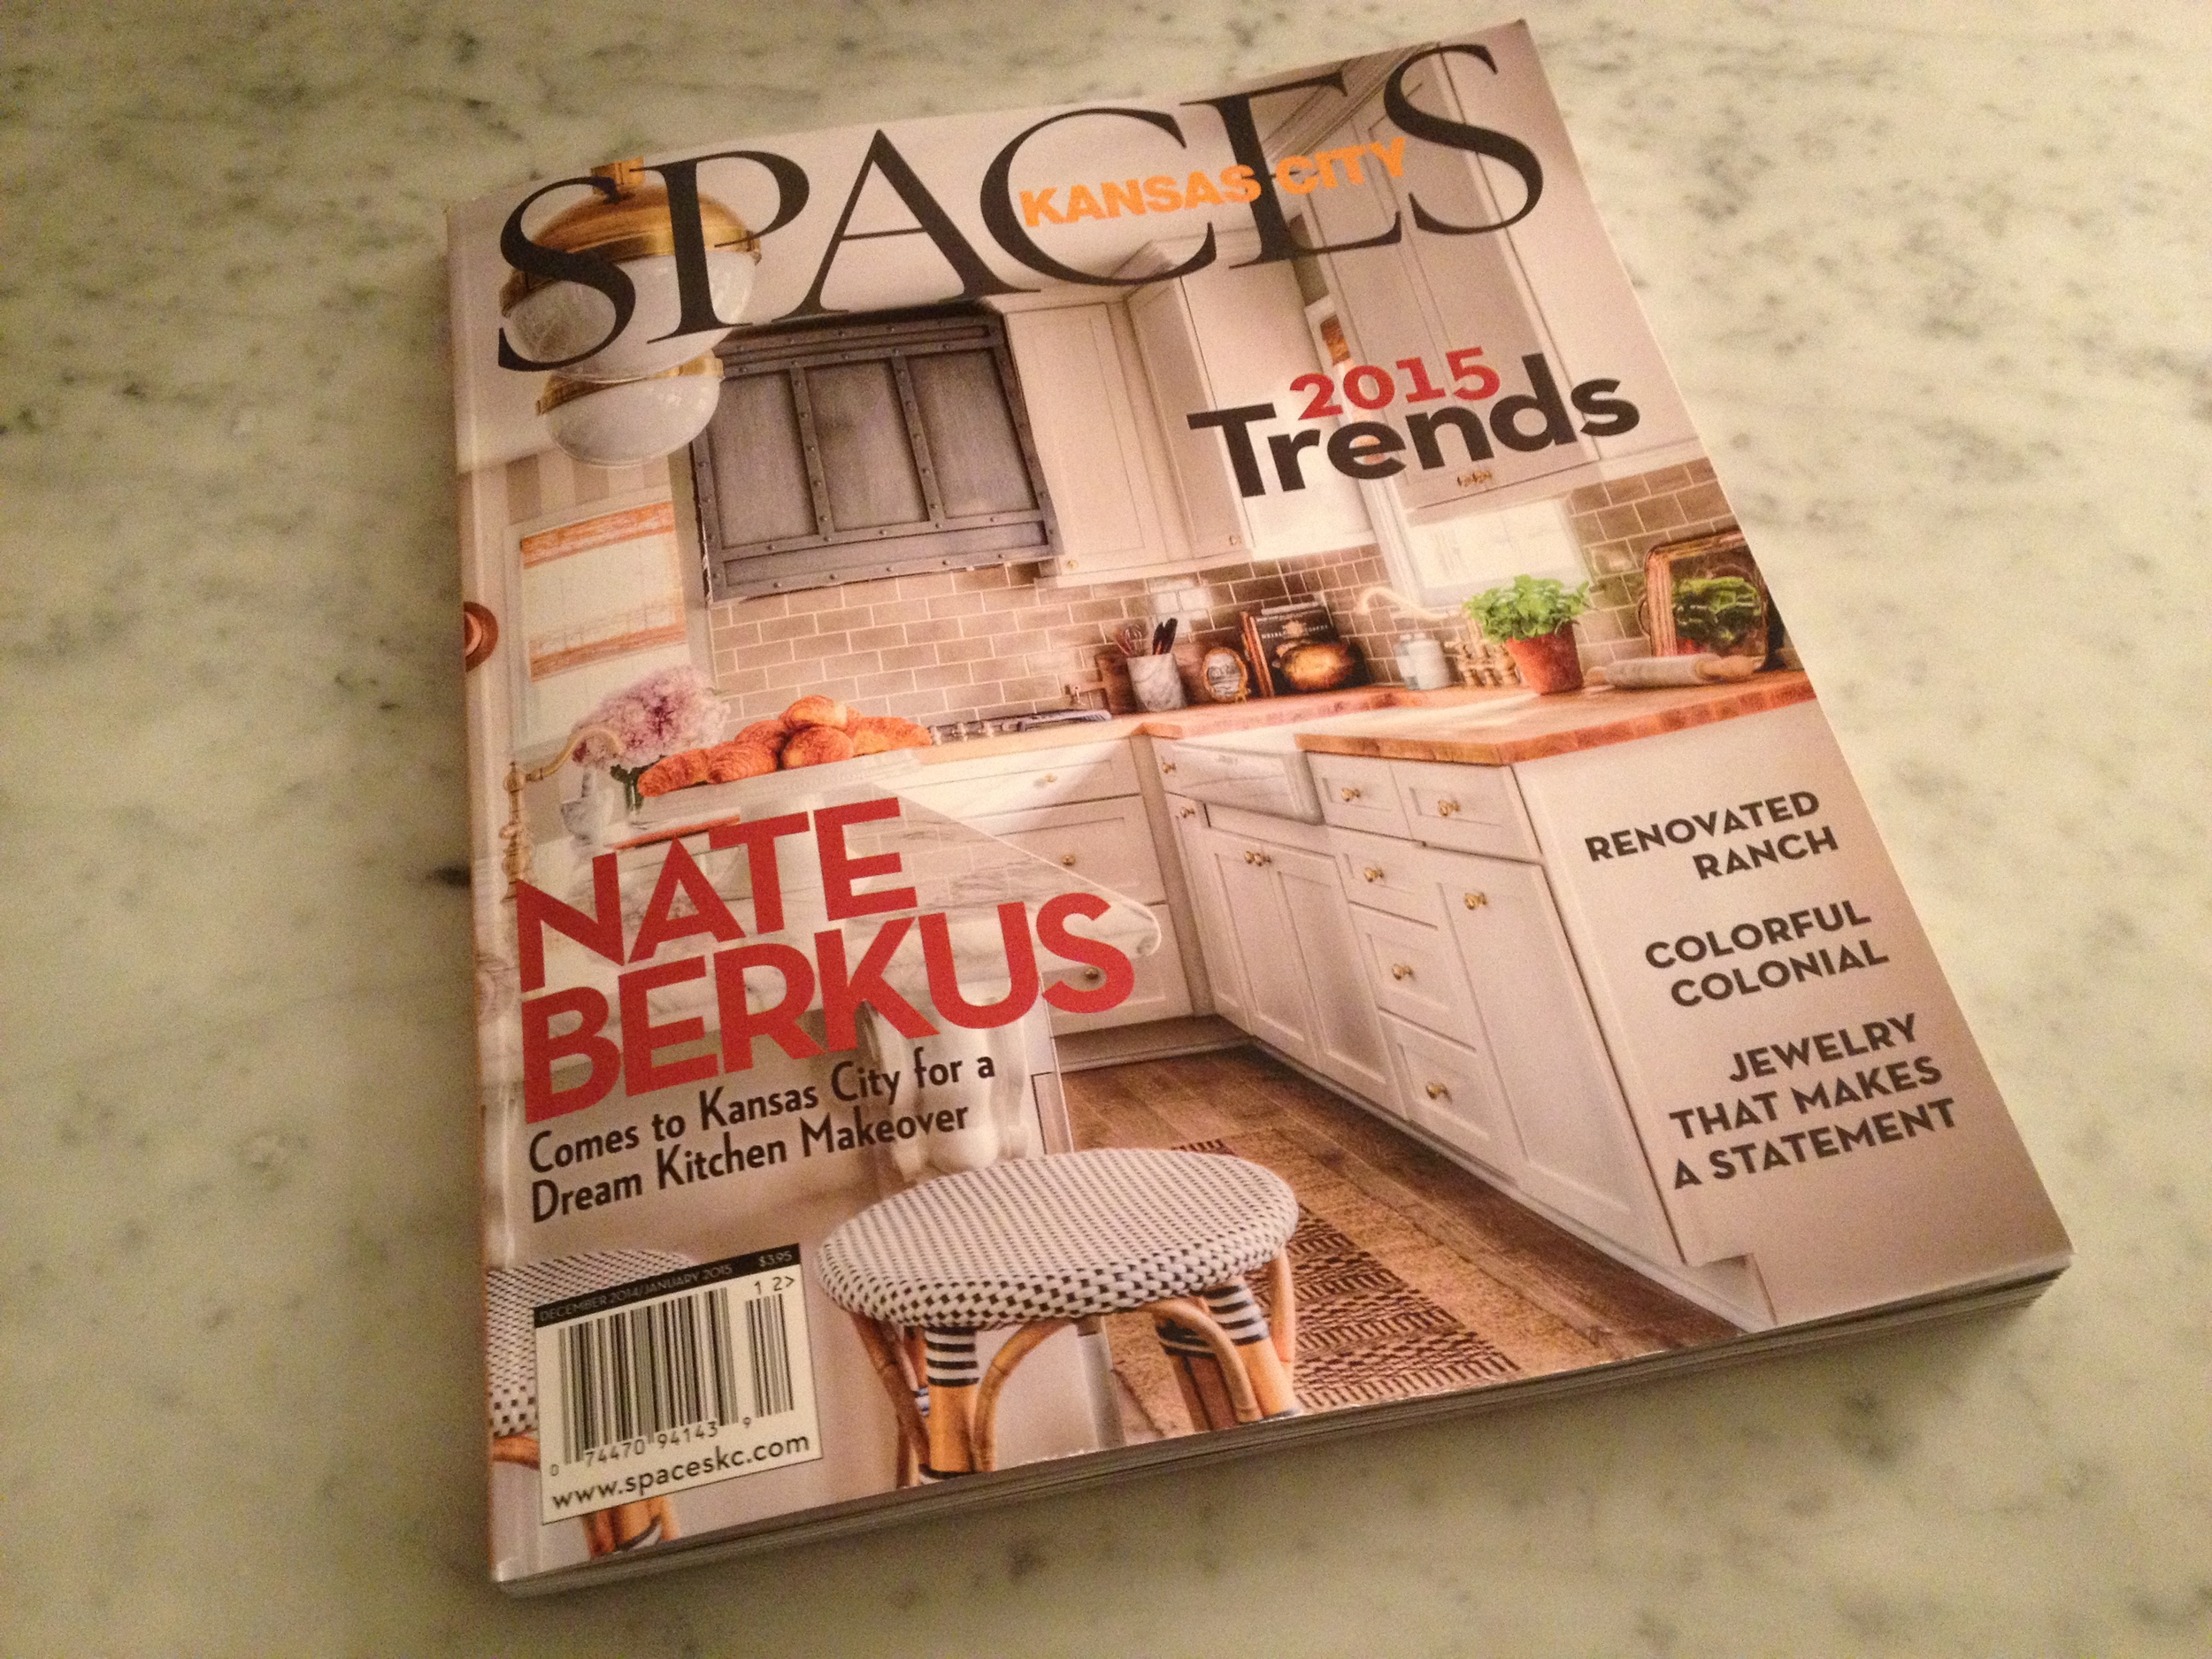 I'm the Colorful Colonial! I'm featured in Spaces!